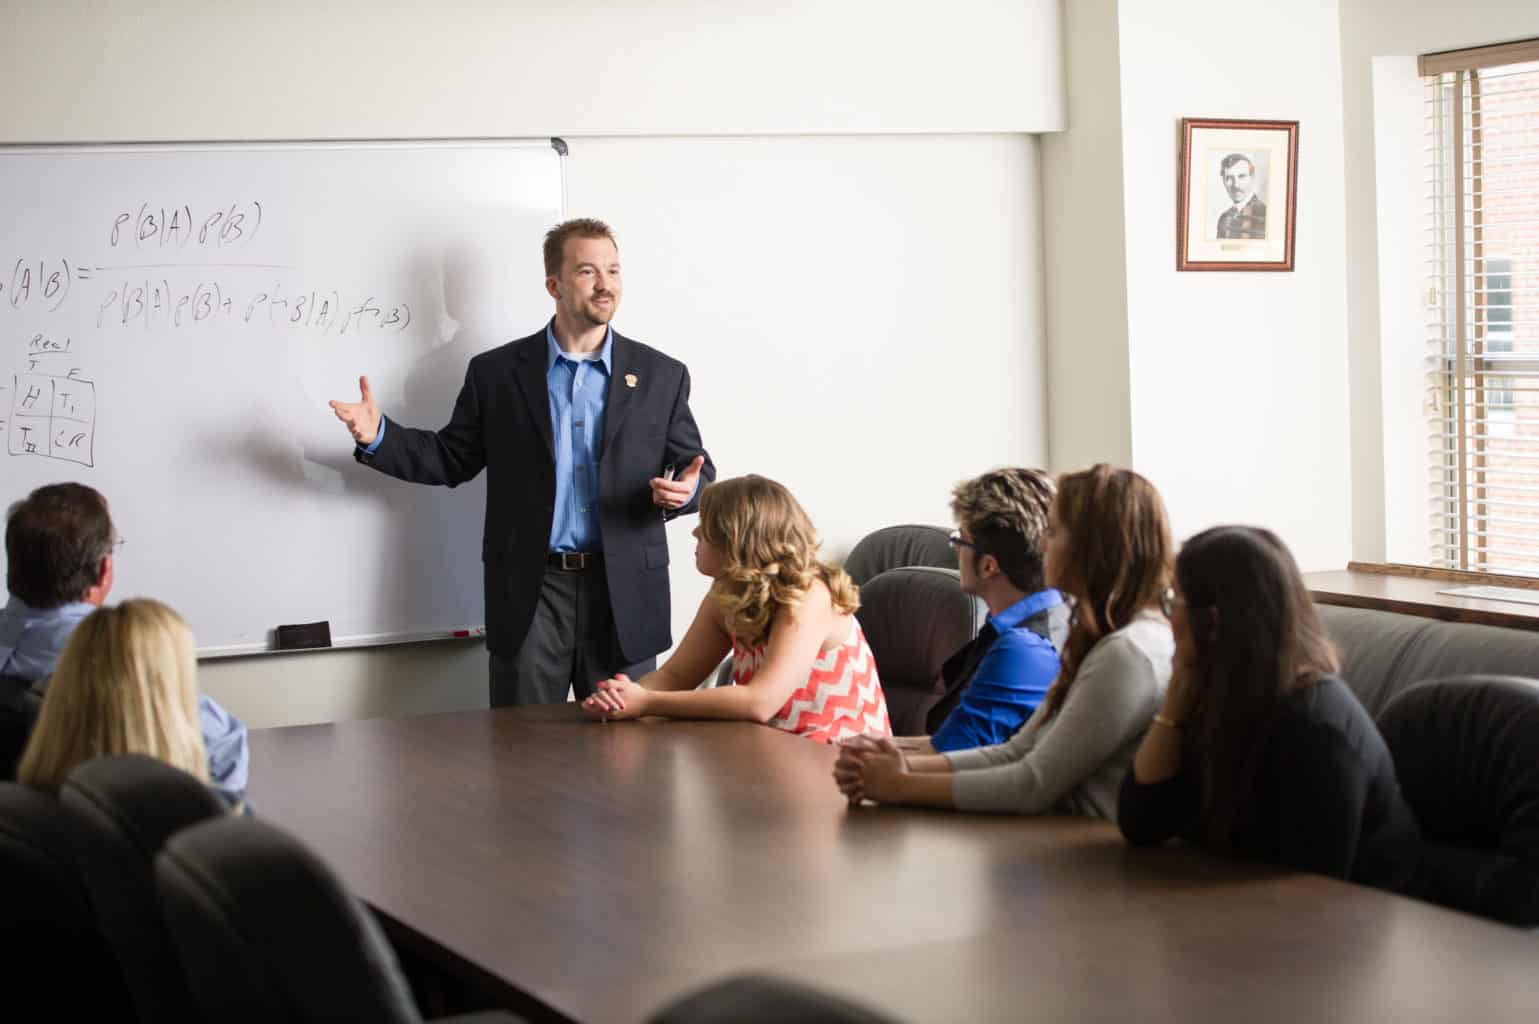 Psychology instructor teaching class around a large boardroom table.